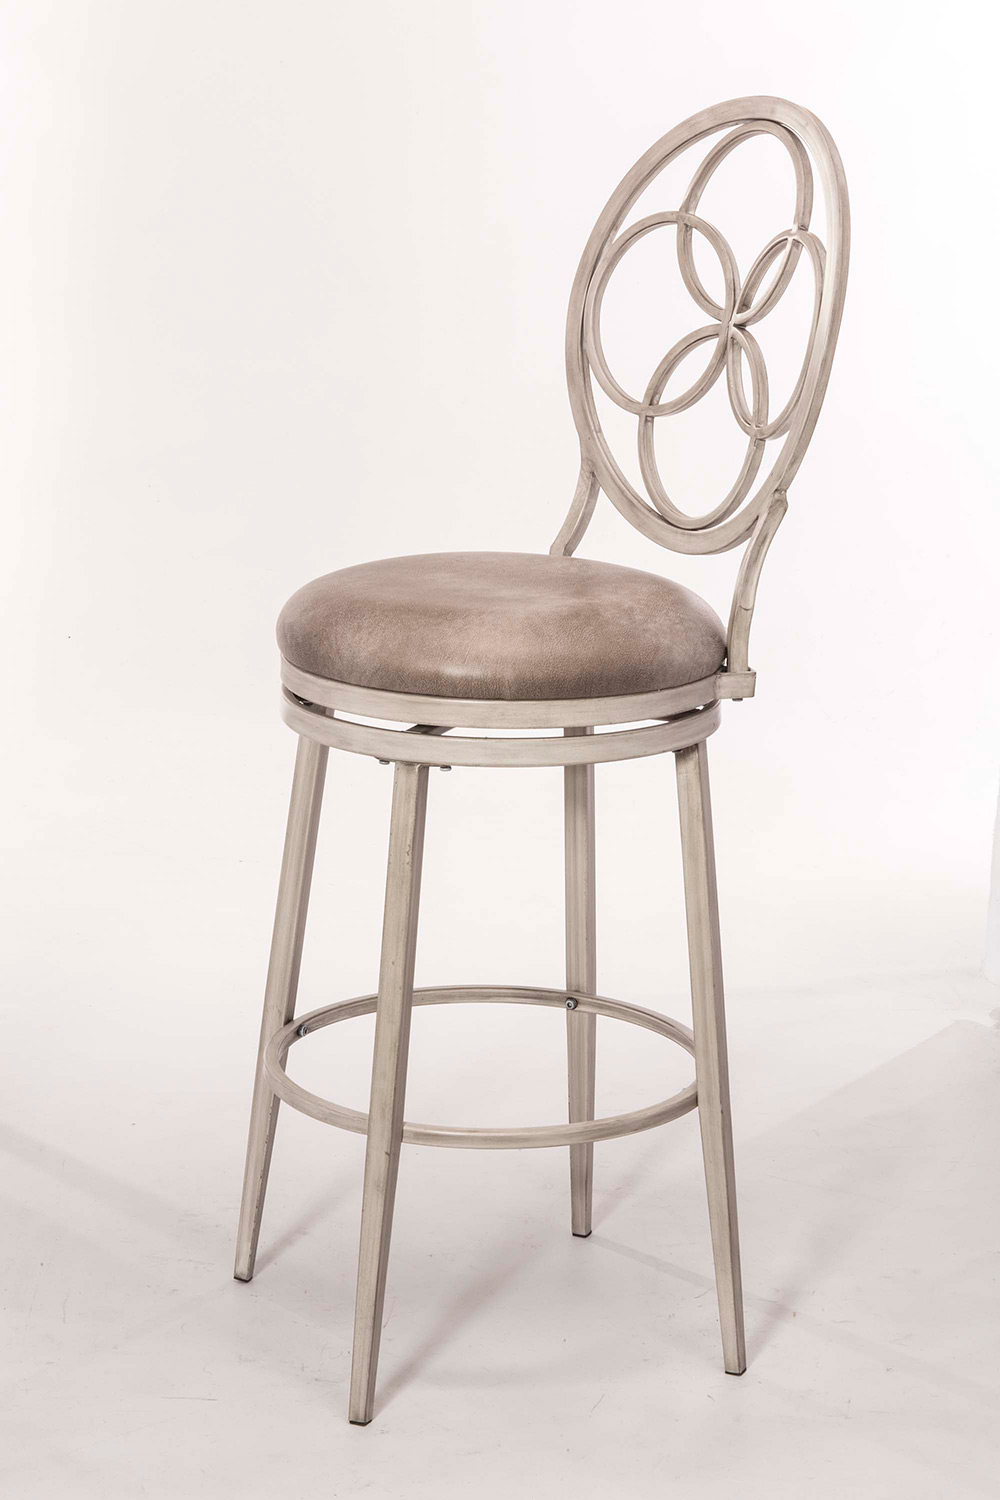 Hillsdale Donnelly Swivel Counter Stool - Weathered Gray